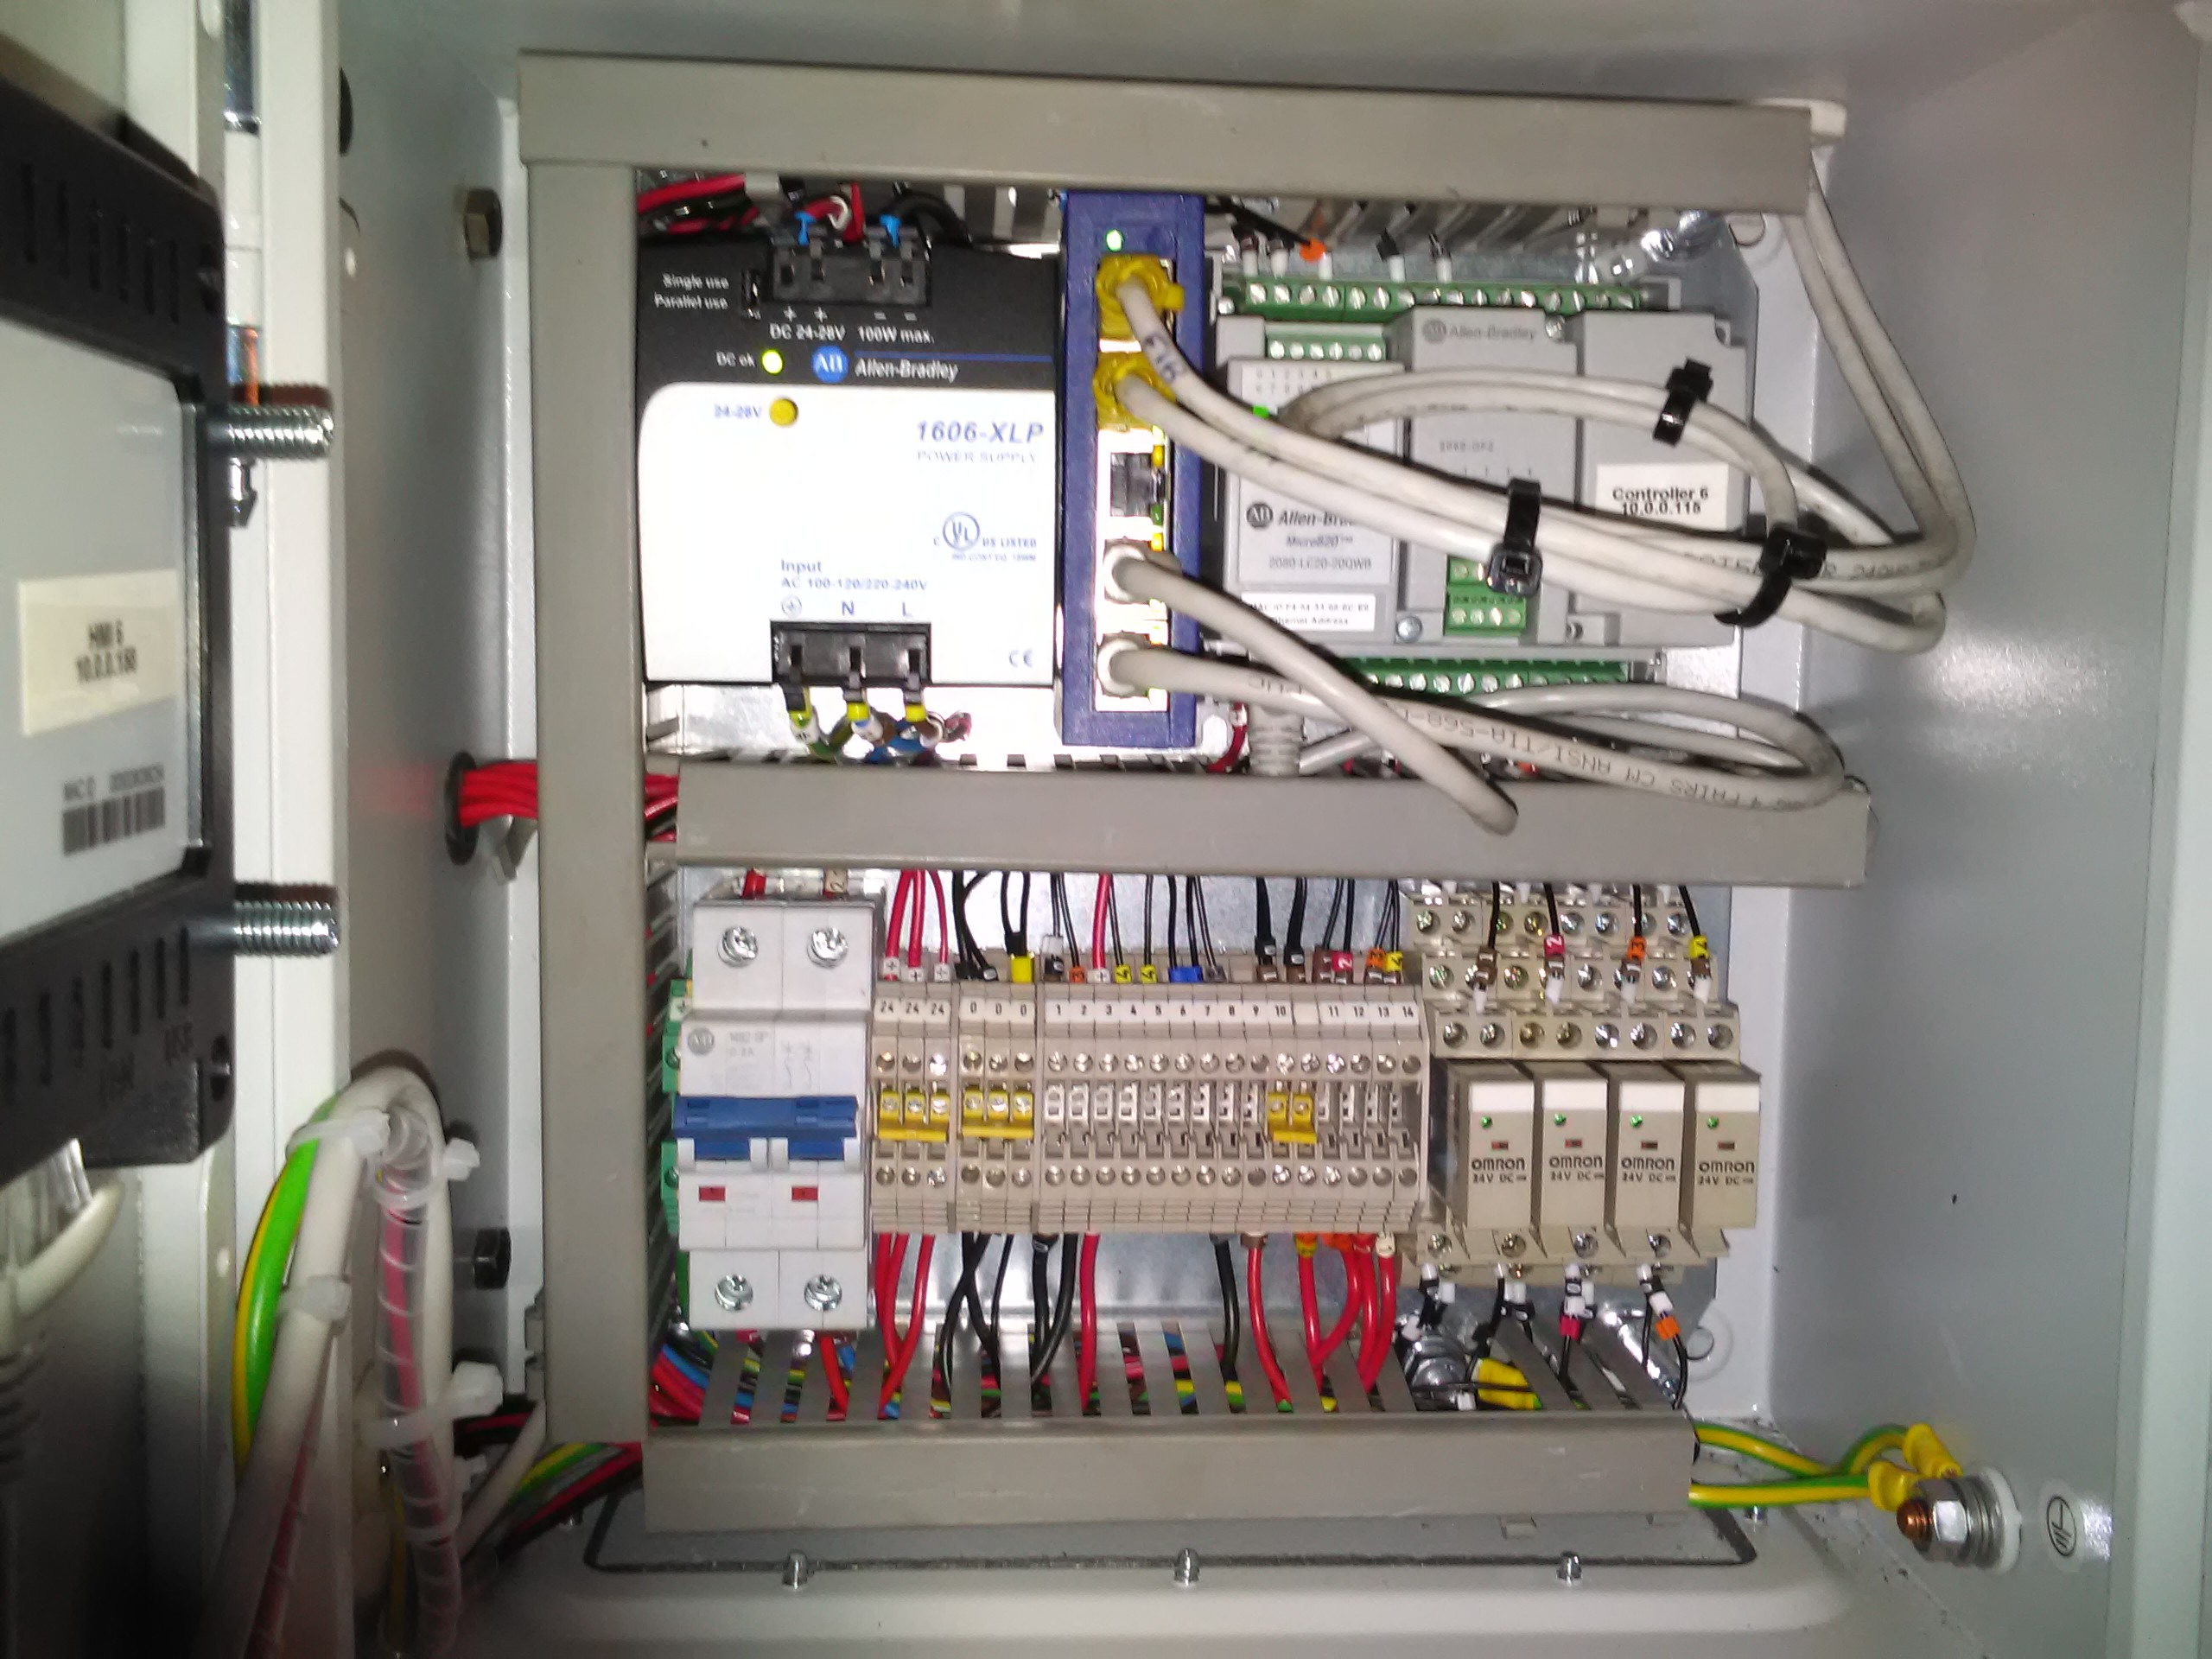 Hvac Control System Ps Automation Wiring To Download The Full Product Specification In Pdf Format Please Click Here